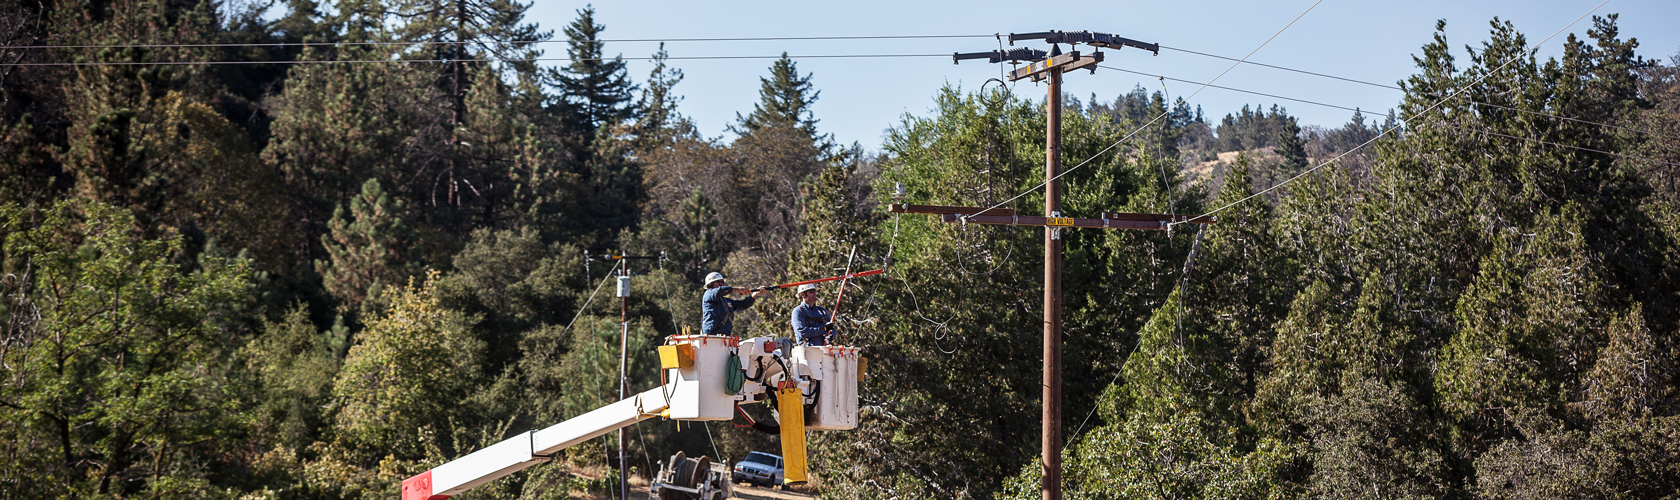 Utility employees working on steel power pole